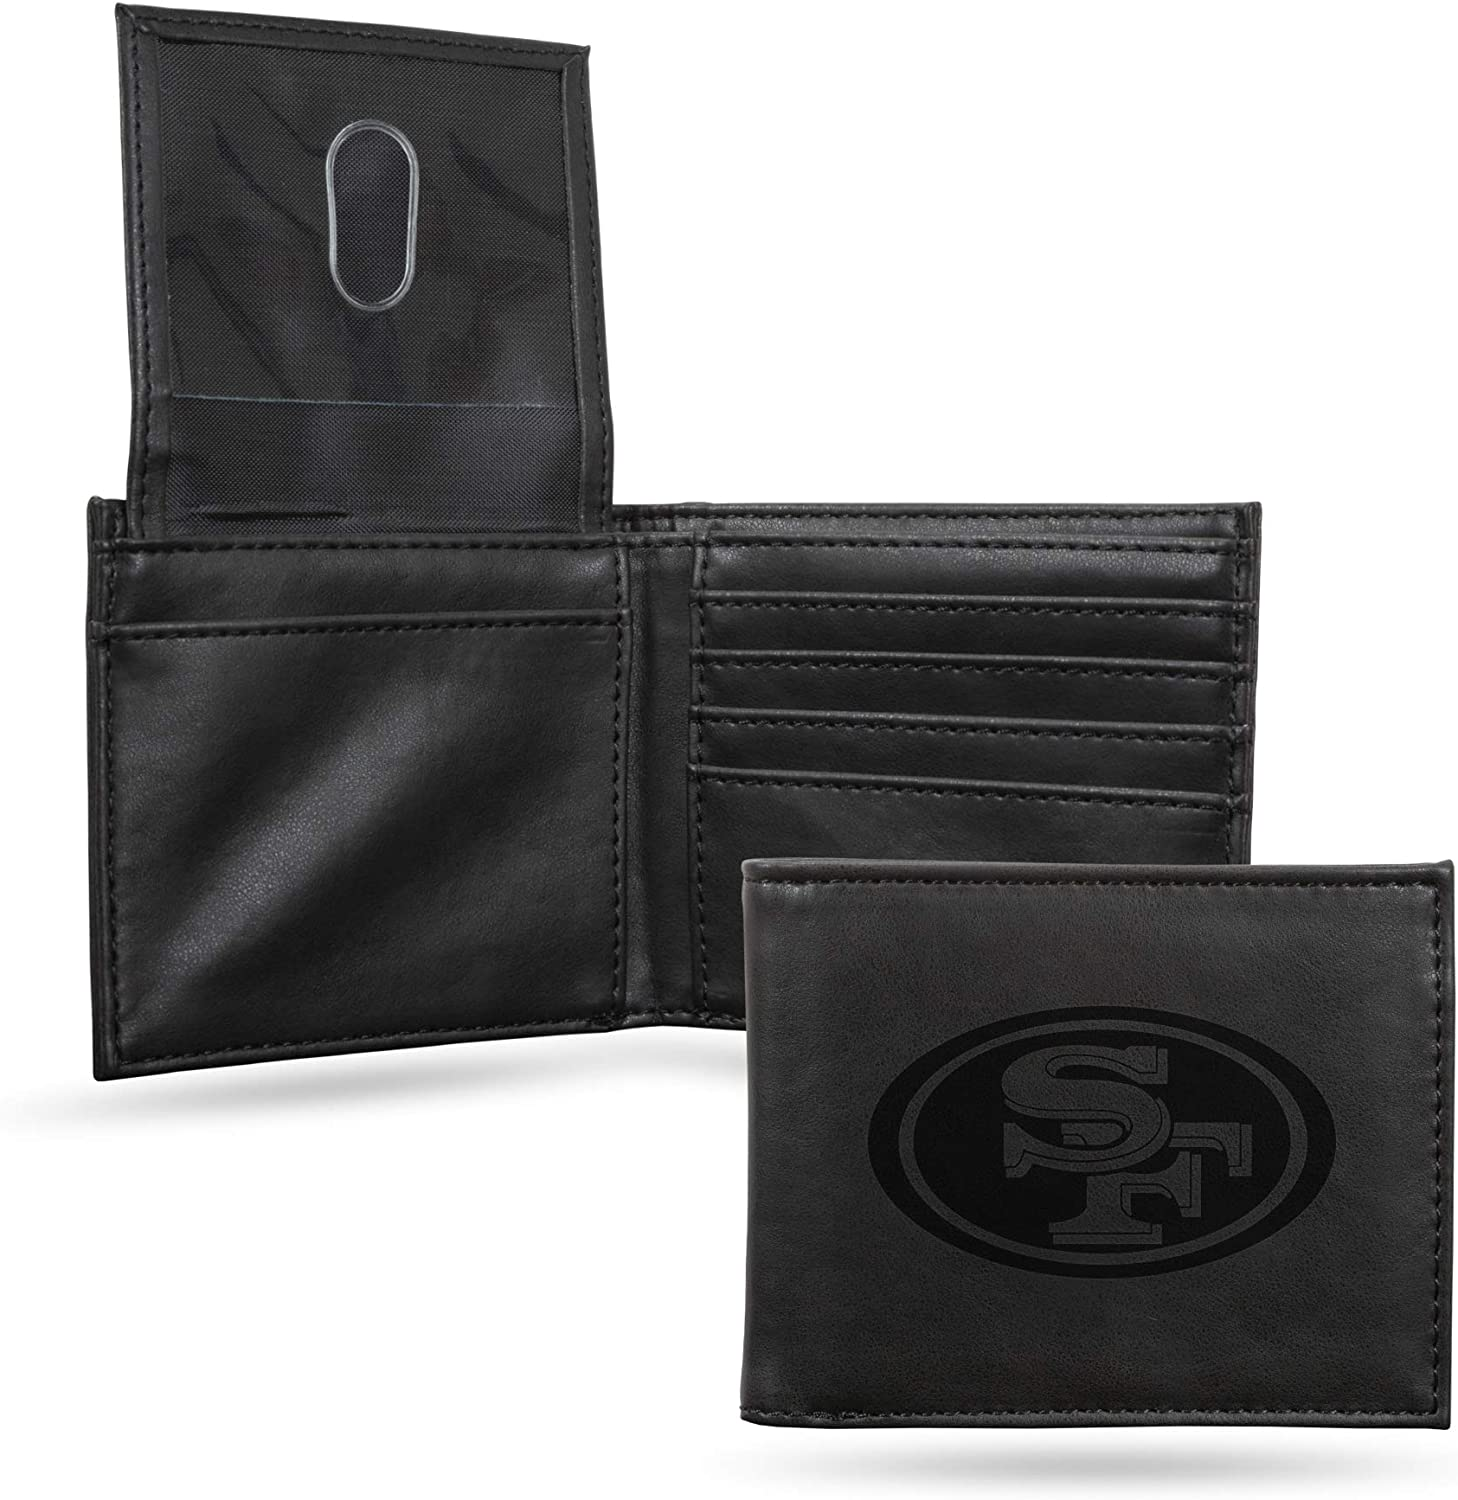 NFL Rico Industries Shipping included Laser Engraved San Billfold Francisc Wallet Product